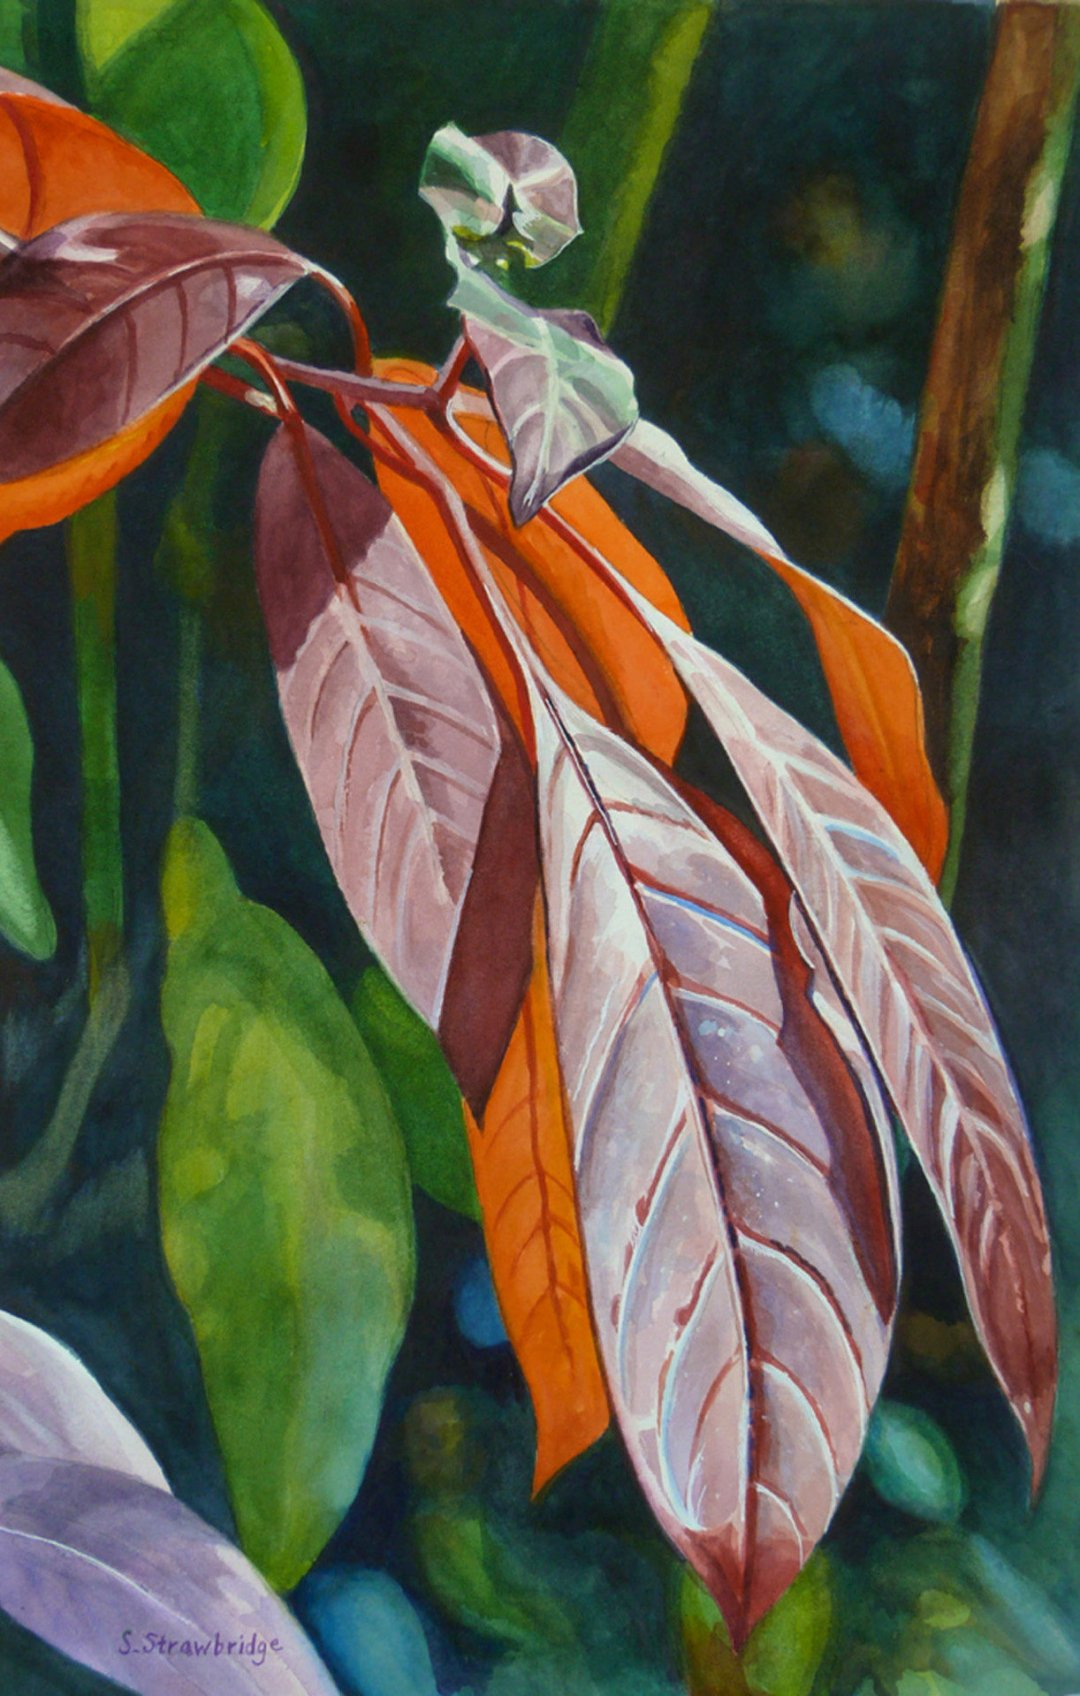 Strawbridge, Susan - Red Leaves